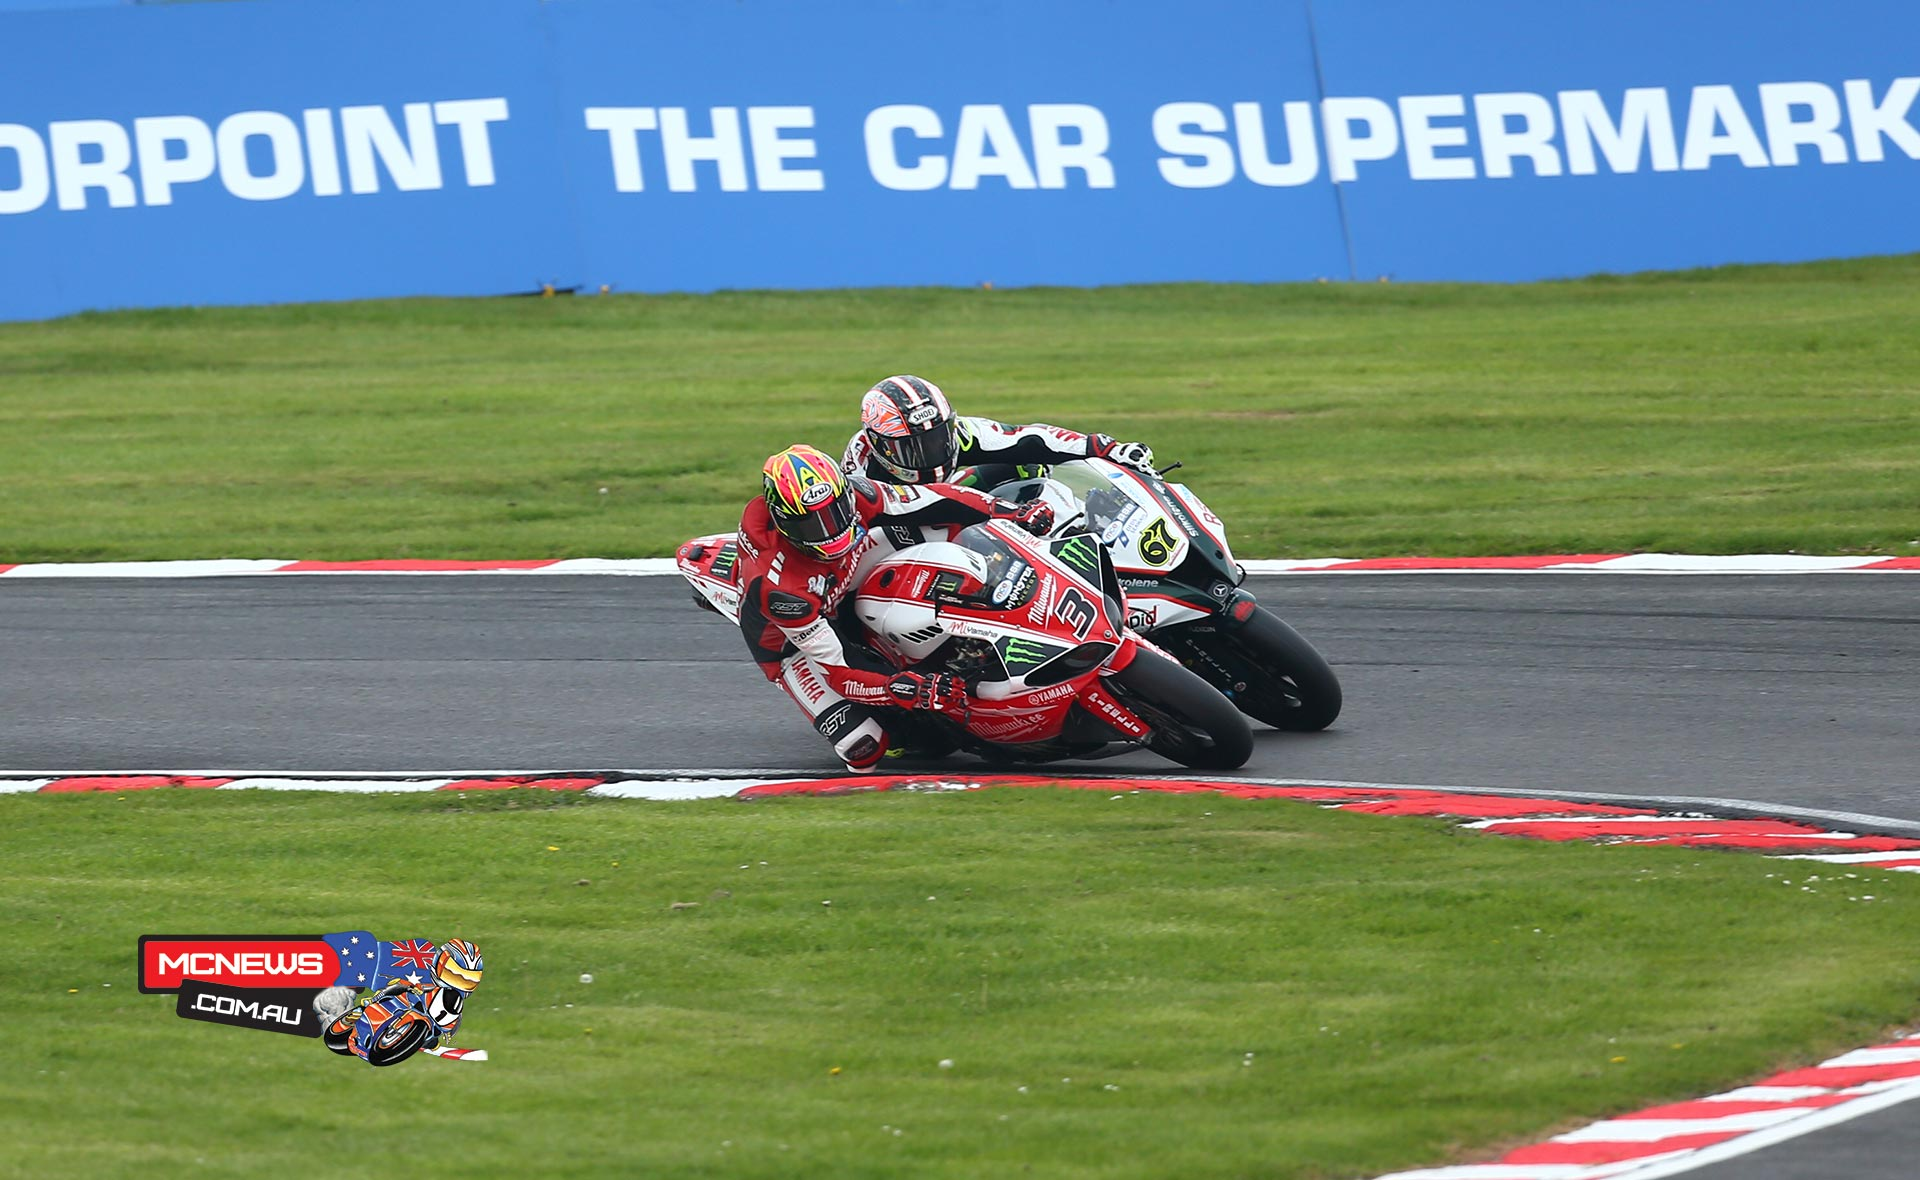 Milwaukee Yamaha's Josh Brookes broke triple champion Shane 'Shakey' Byrne's run of winning form by claiming the victory in the second round of the MCE Insurance British Superbike Championship at Oulton Park.